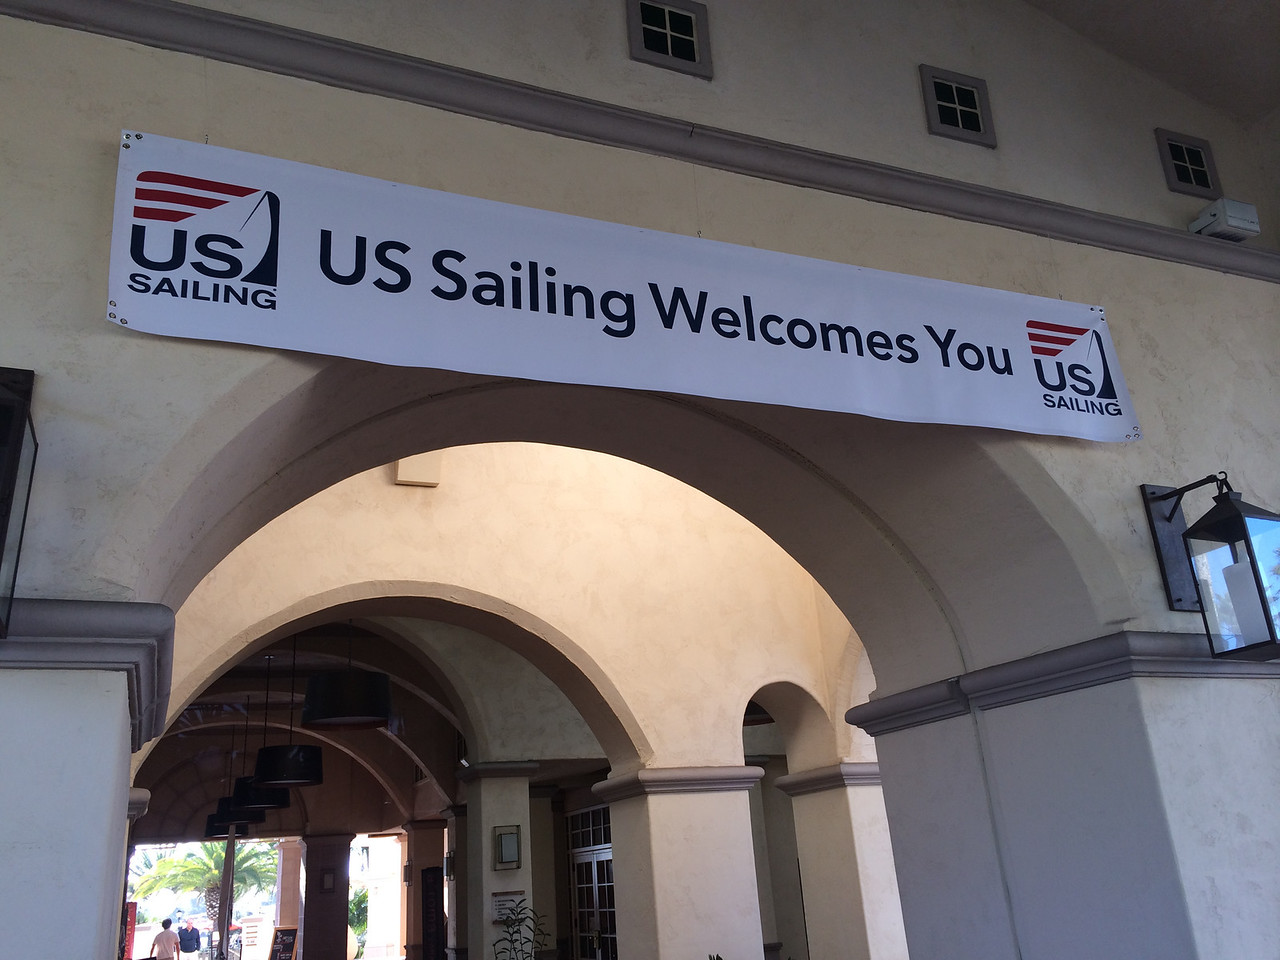 2/5 US Sailing Leadership Forum Welcome Reception